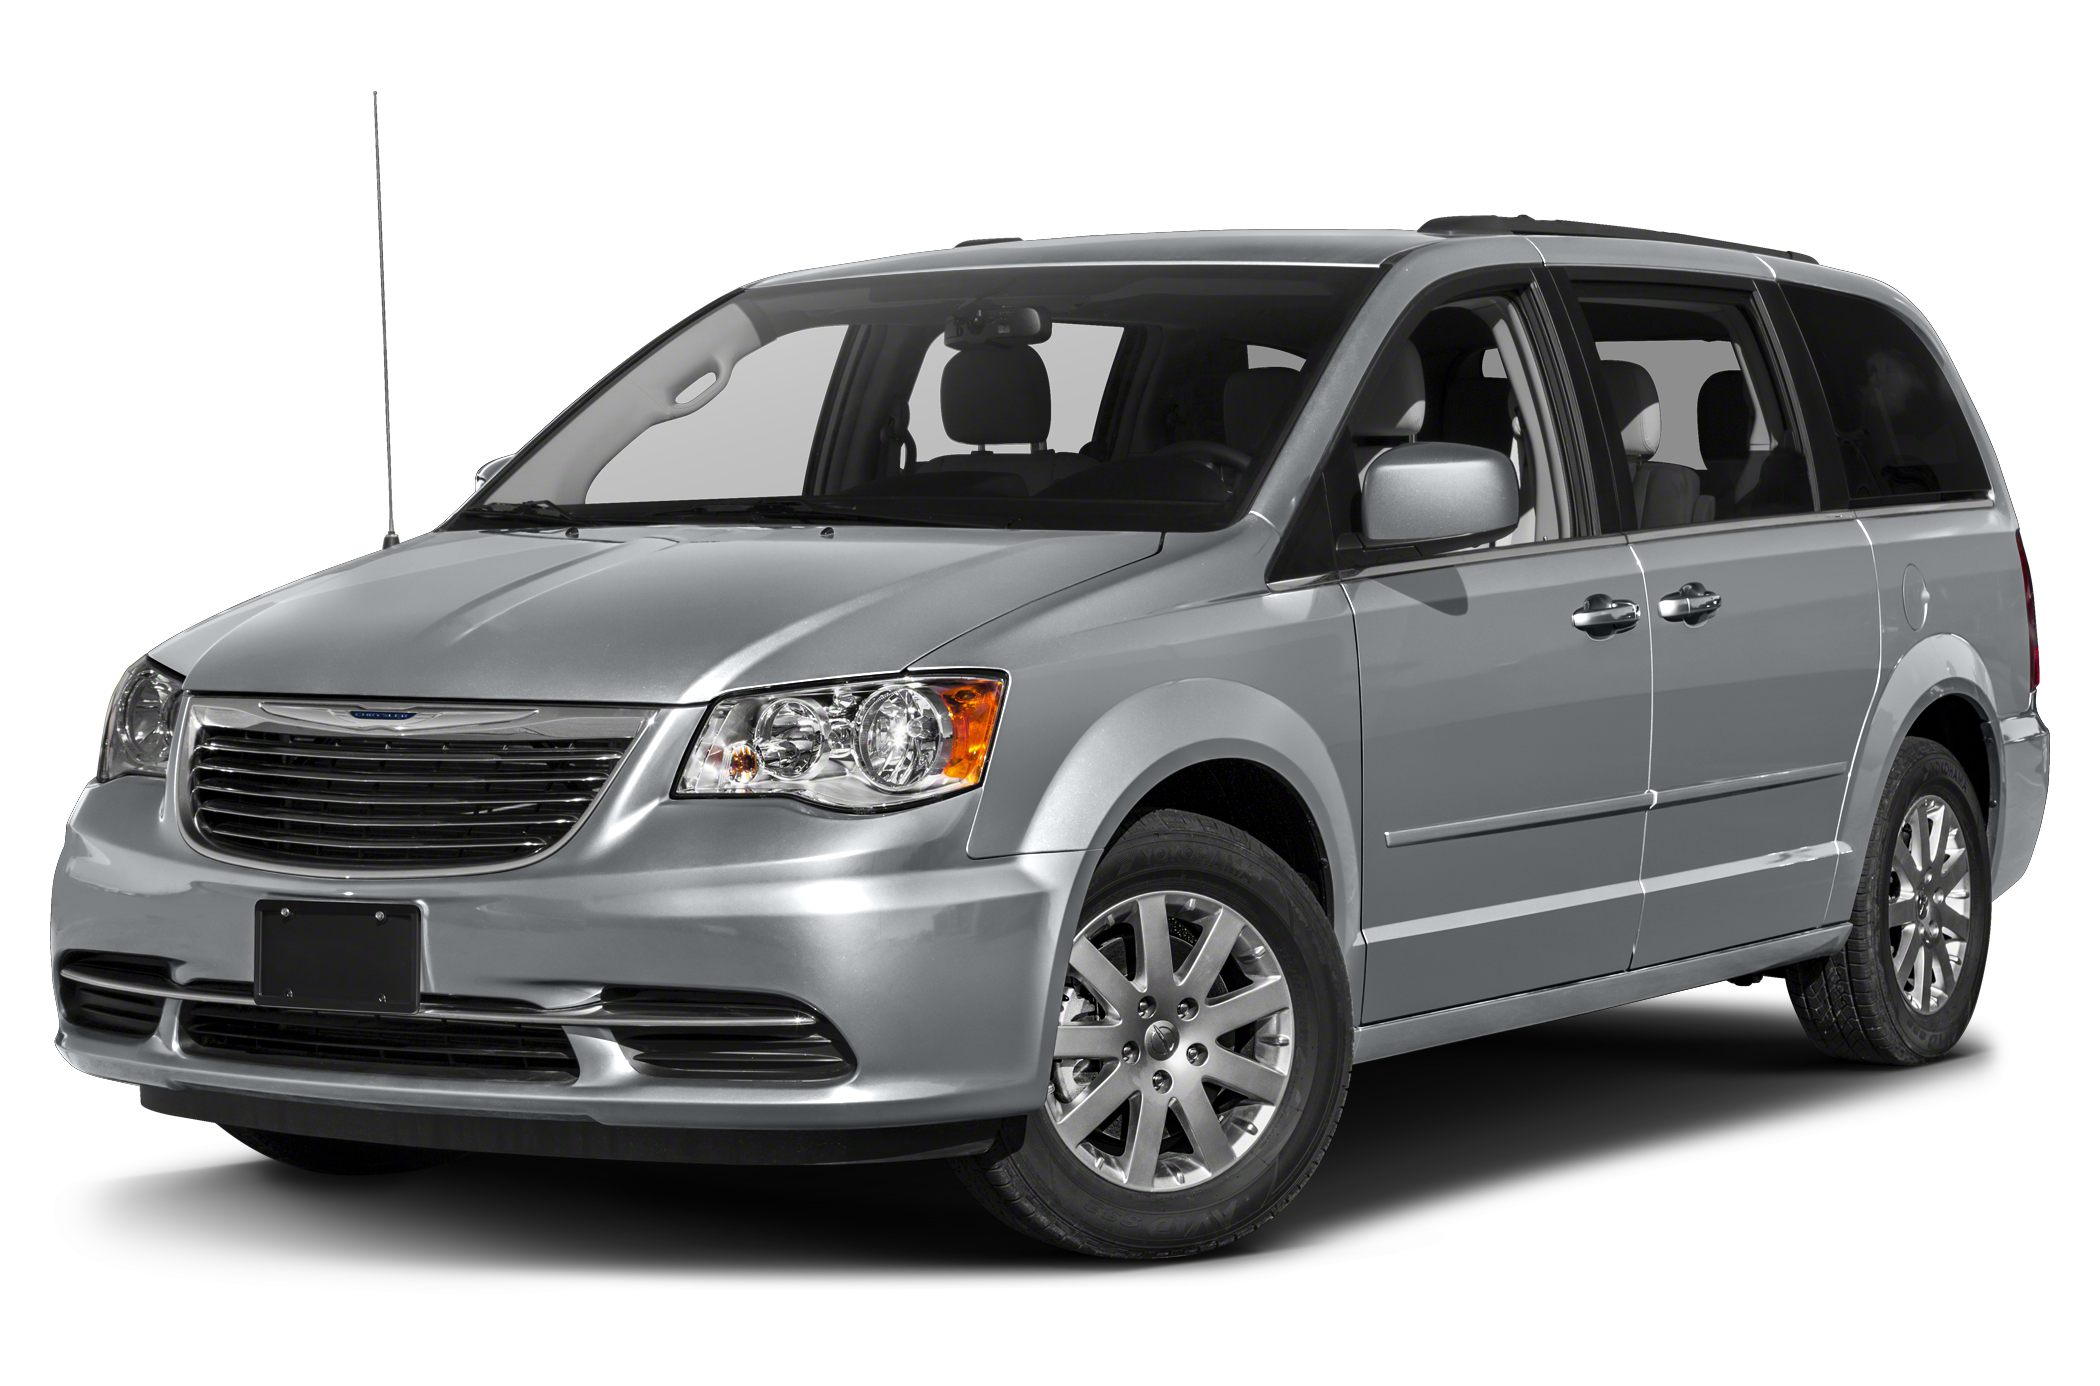 2014 Chrysler Town  Country Touring WE SELL OUR VEHICLES AT WHOLESALE PRICES AND STAND BEHIND OUR